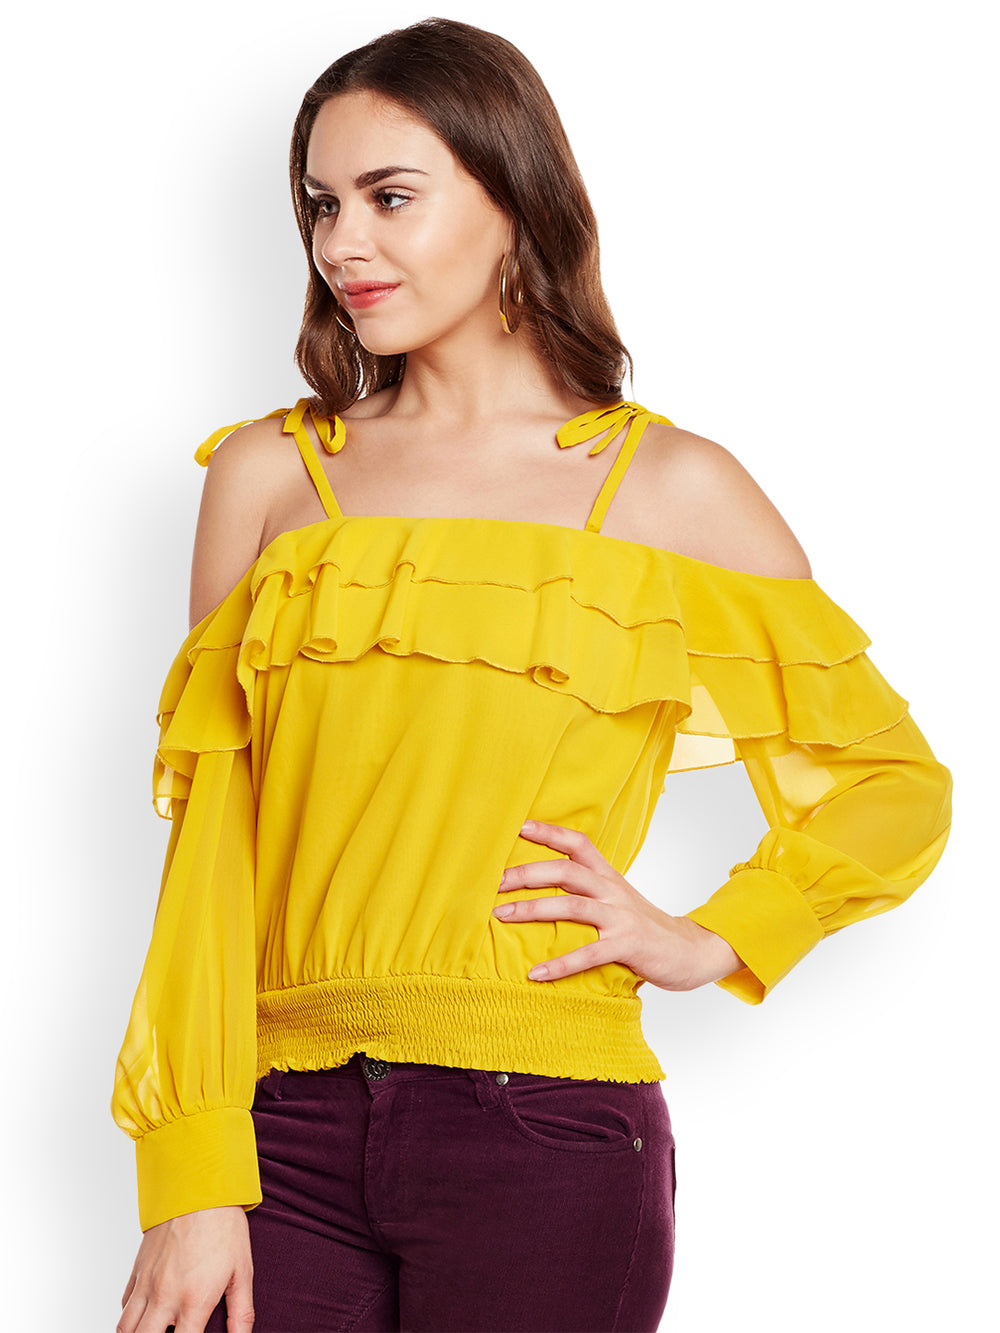 eyelet Women Yellow Solid Top